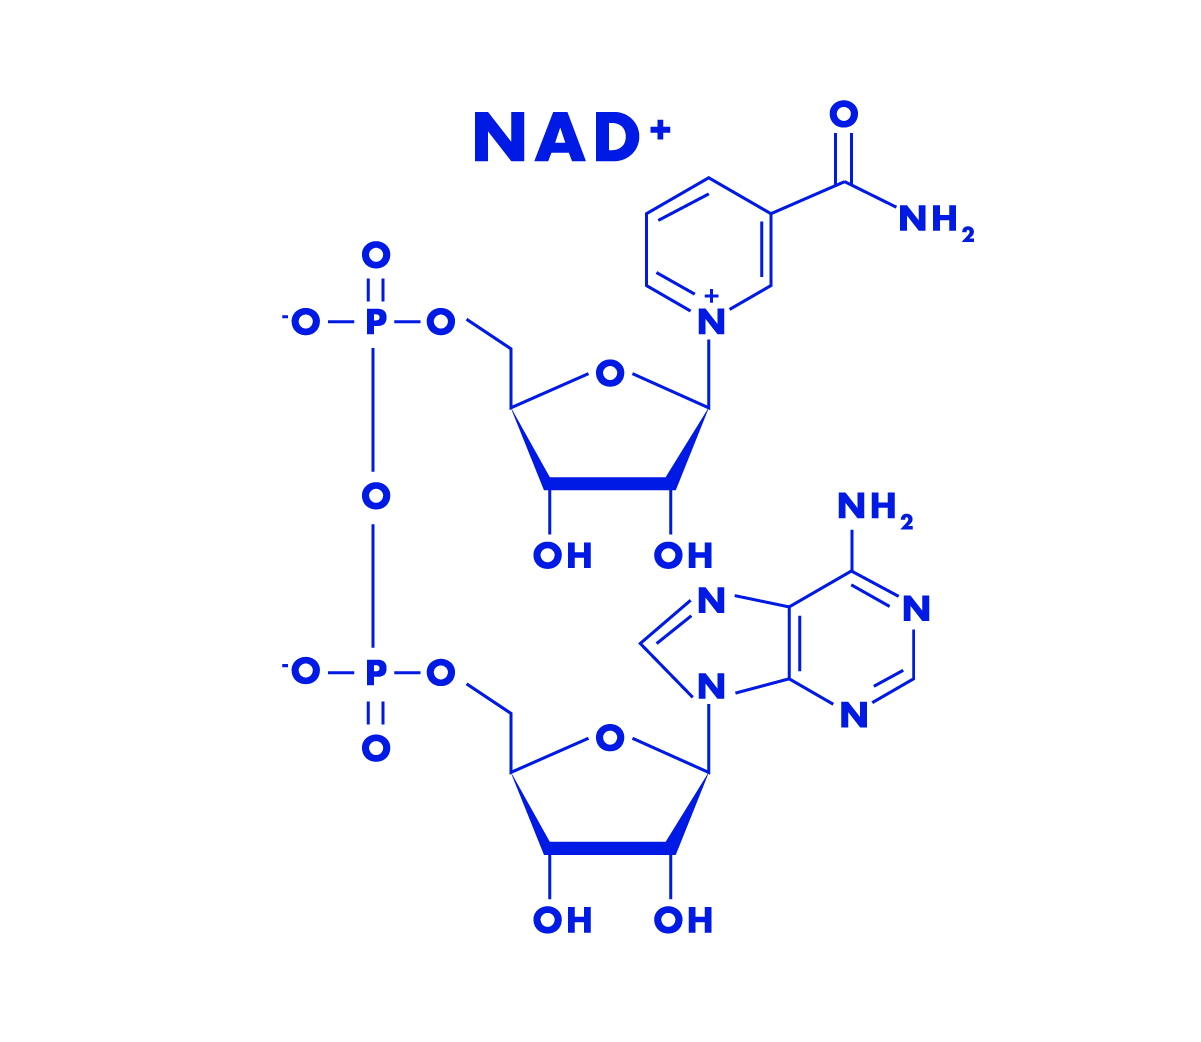 The Molecule NAD - The molecule NAD is constantly being consumed and created by cells and its levels have been shown to decline as we age. Its dwindling levels may be directly related to how we experience aging. Beyond declining with age, NAD is linked to healthy aging because of the vital role it plays in both energy production, and the optimal function of our cells' powerhouses (the mitochondria). More broadly, NAD supports a healthy cellular metabolism. The molecule NAD helps practically every process by which cells break down food and build up molecules like fats, DNA, and hormones.